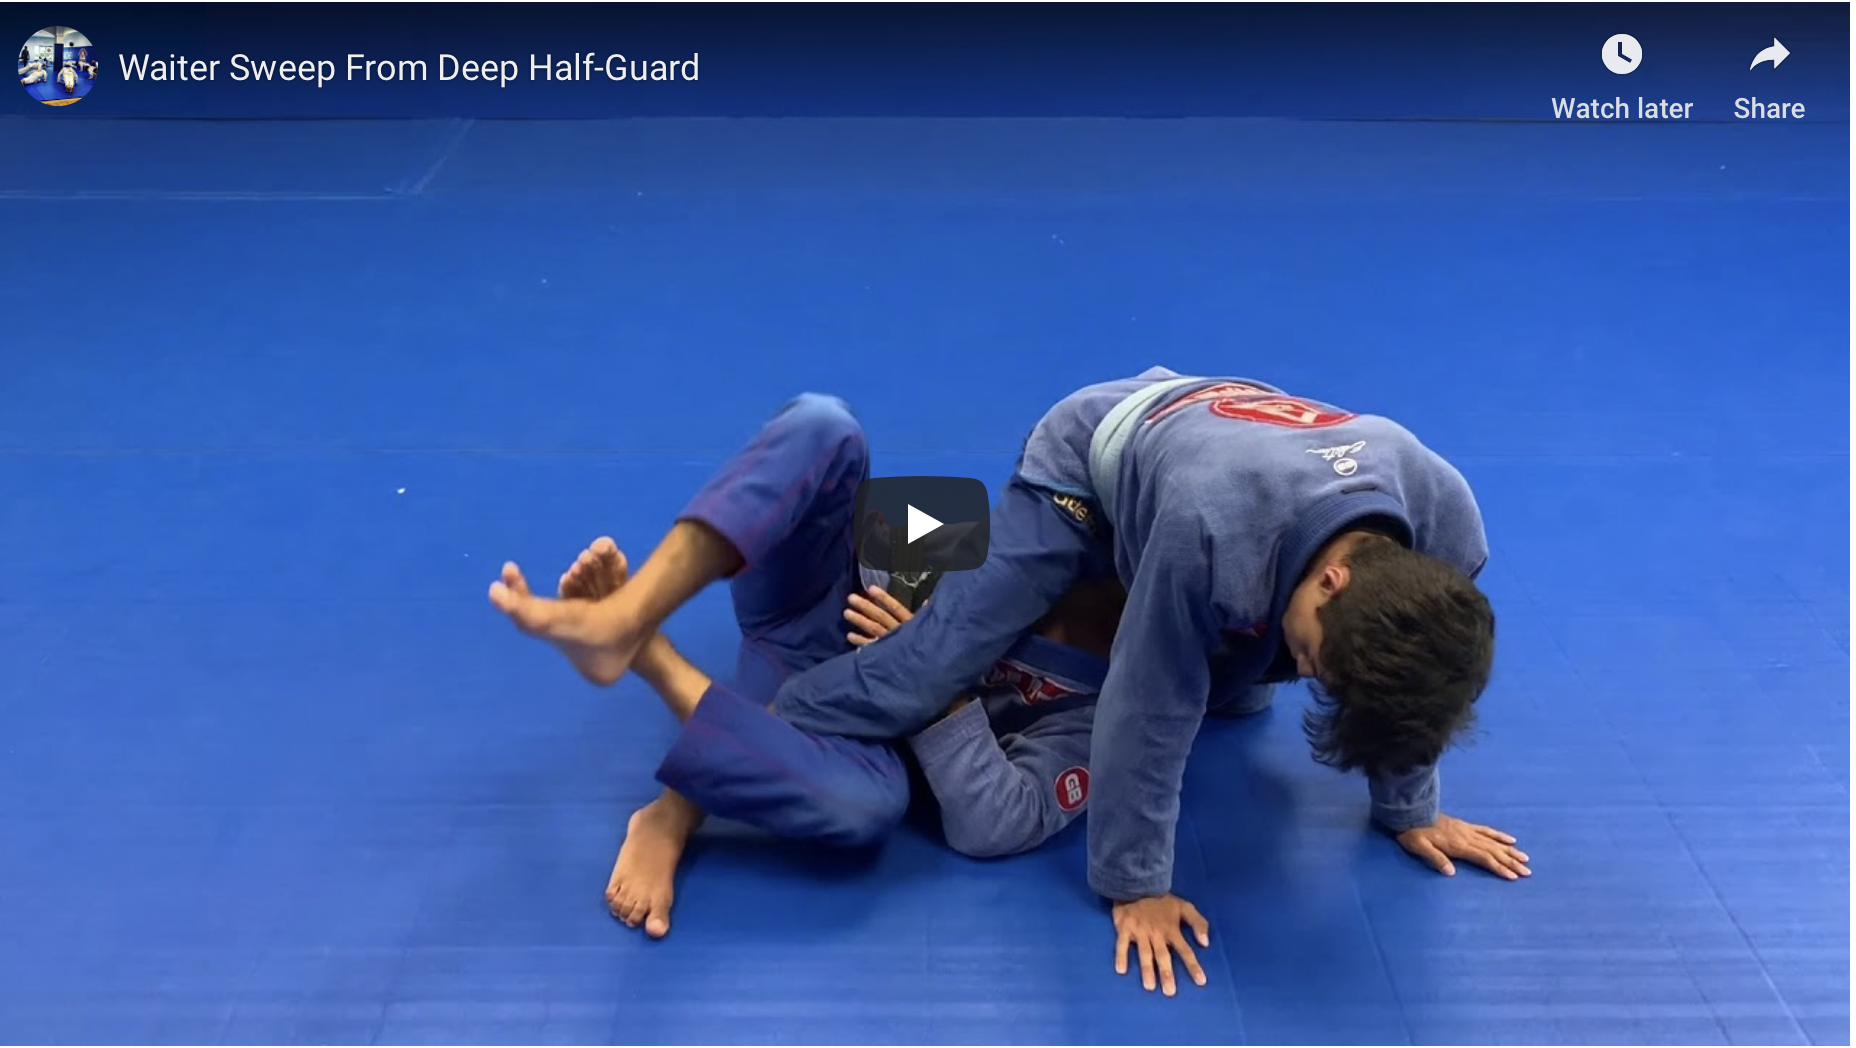 Waiter Sweep From deep Half-Guard (Video)